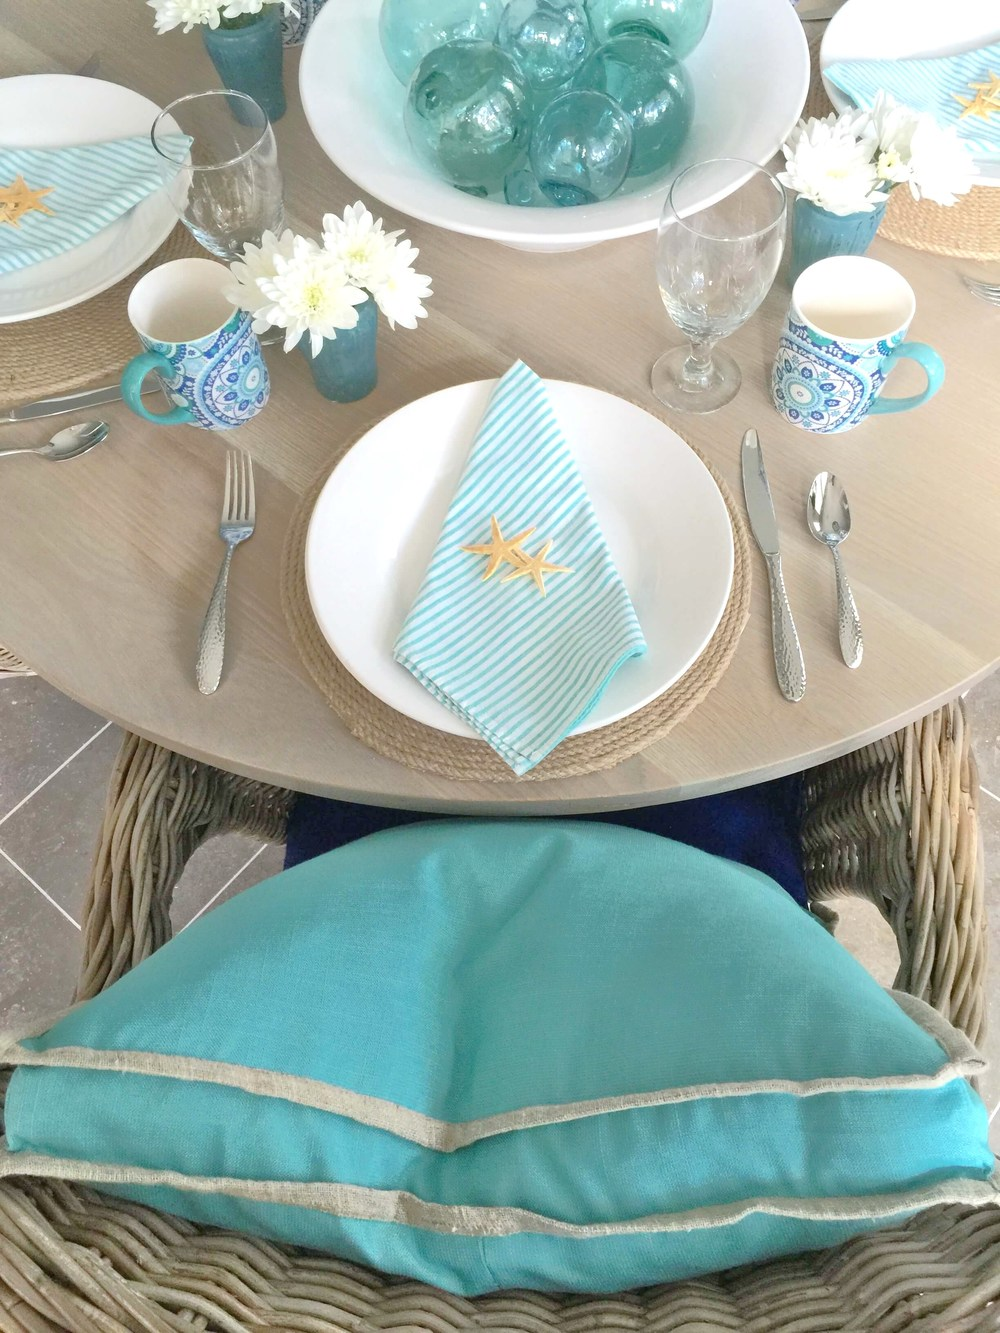 Coastal tabletop, beach-inspired entertaining | Interior Designer: Carla Aston